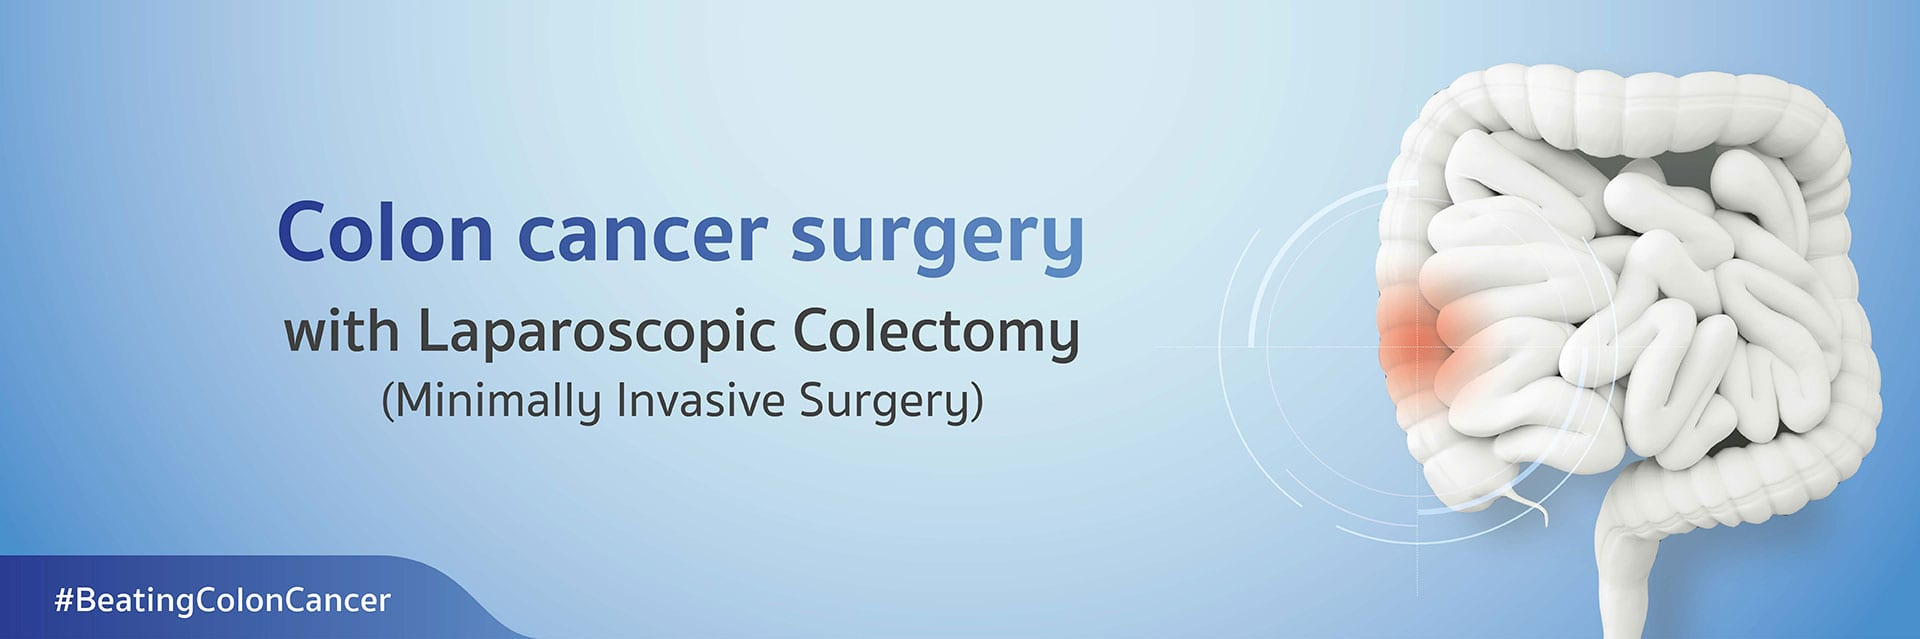 Colon cancer surgery with Laparoscopic Colectomy